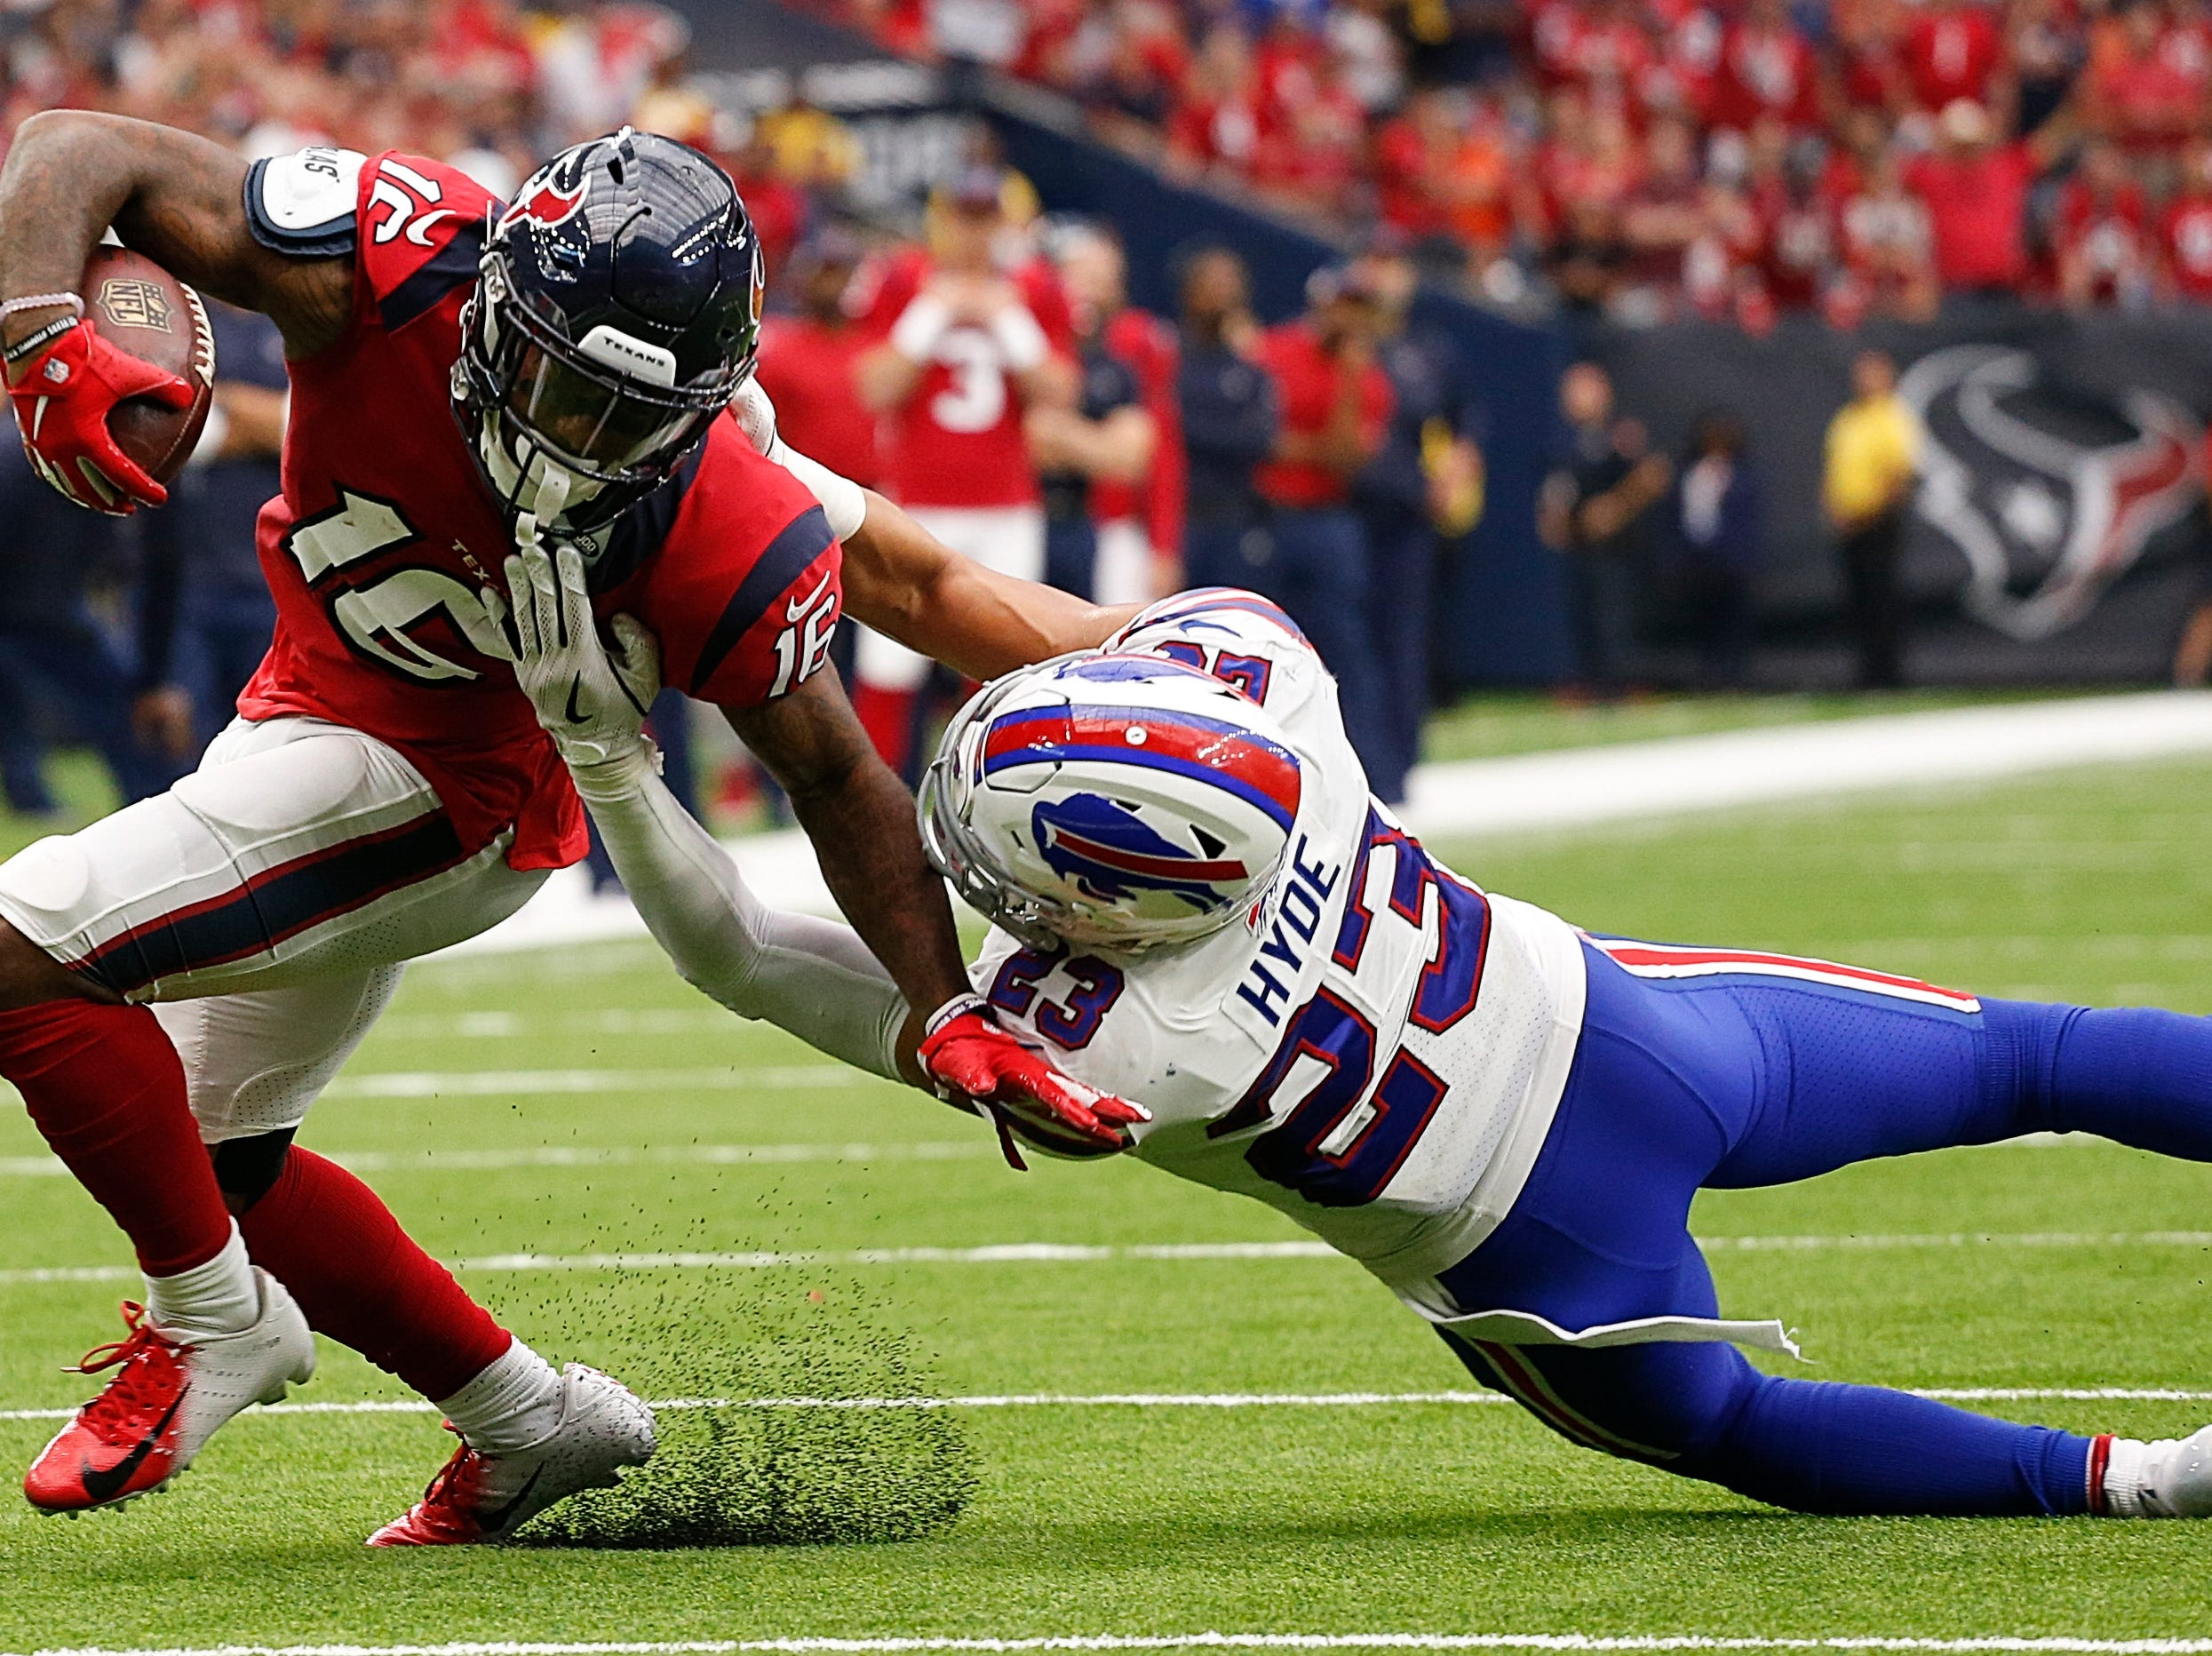 HOUSTON, TX - OCTOBER 14:  Keke Coutee #16 of the Houston Texans is tackled by Micah Hyde #23 of the Buffalo Bills in the second half at NRG Stadium on October 14, 2018 in Houston, Texas.  (Photo by Bob Levey/Getty Images)